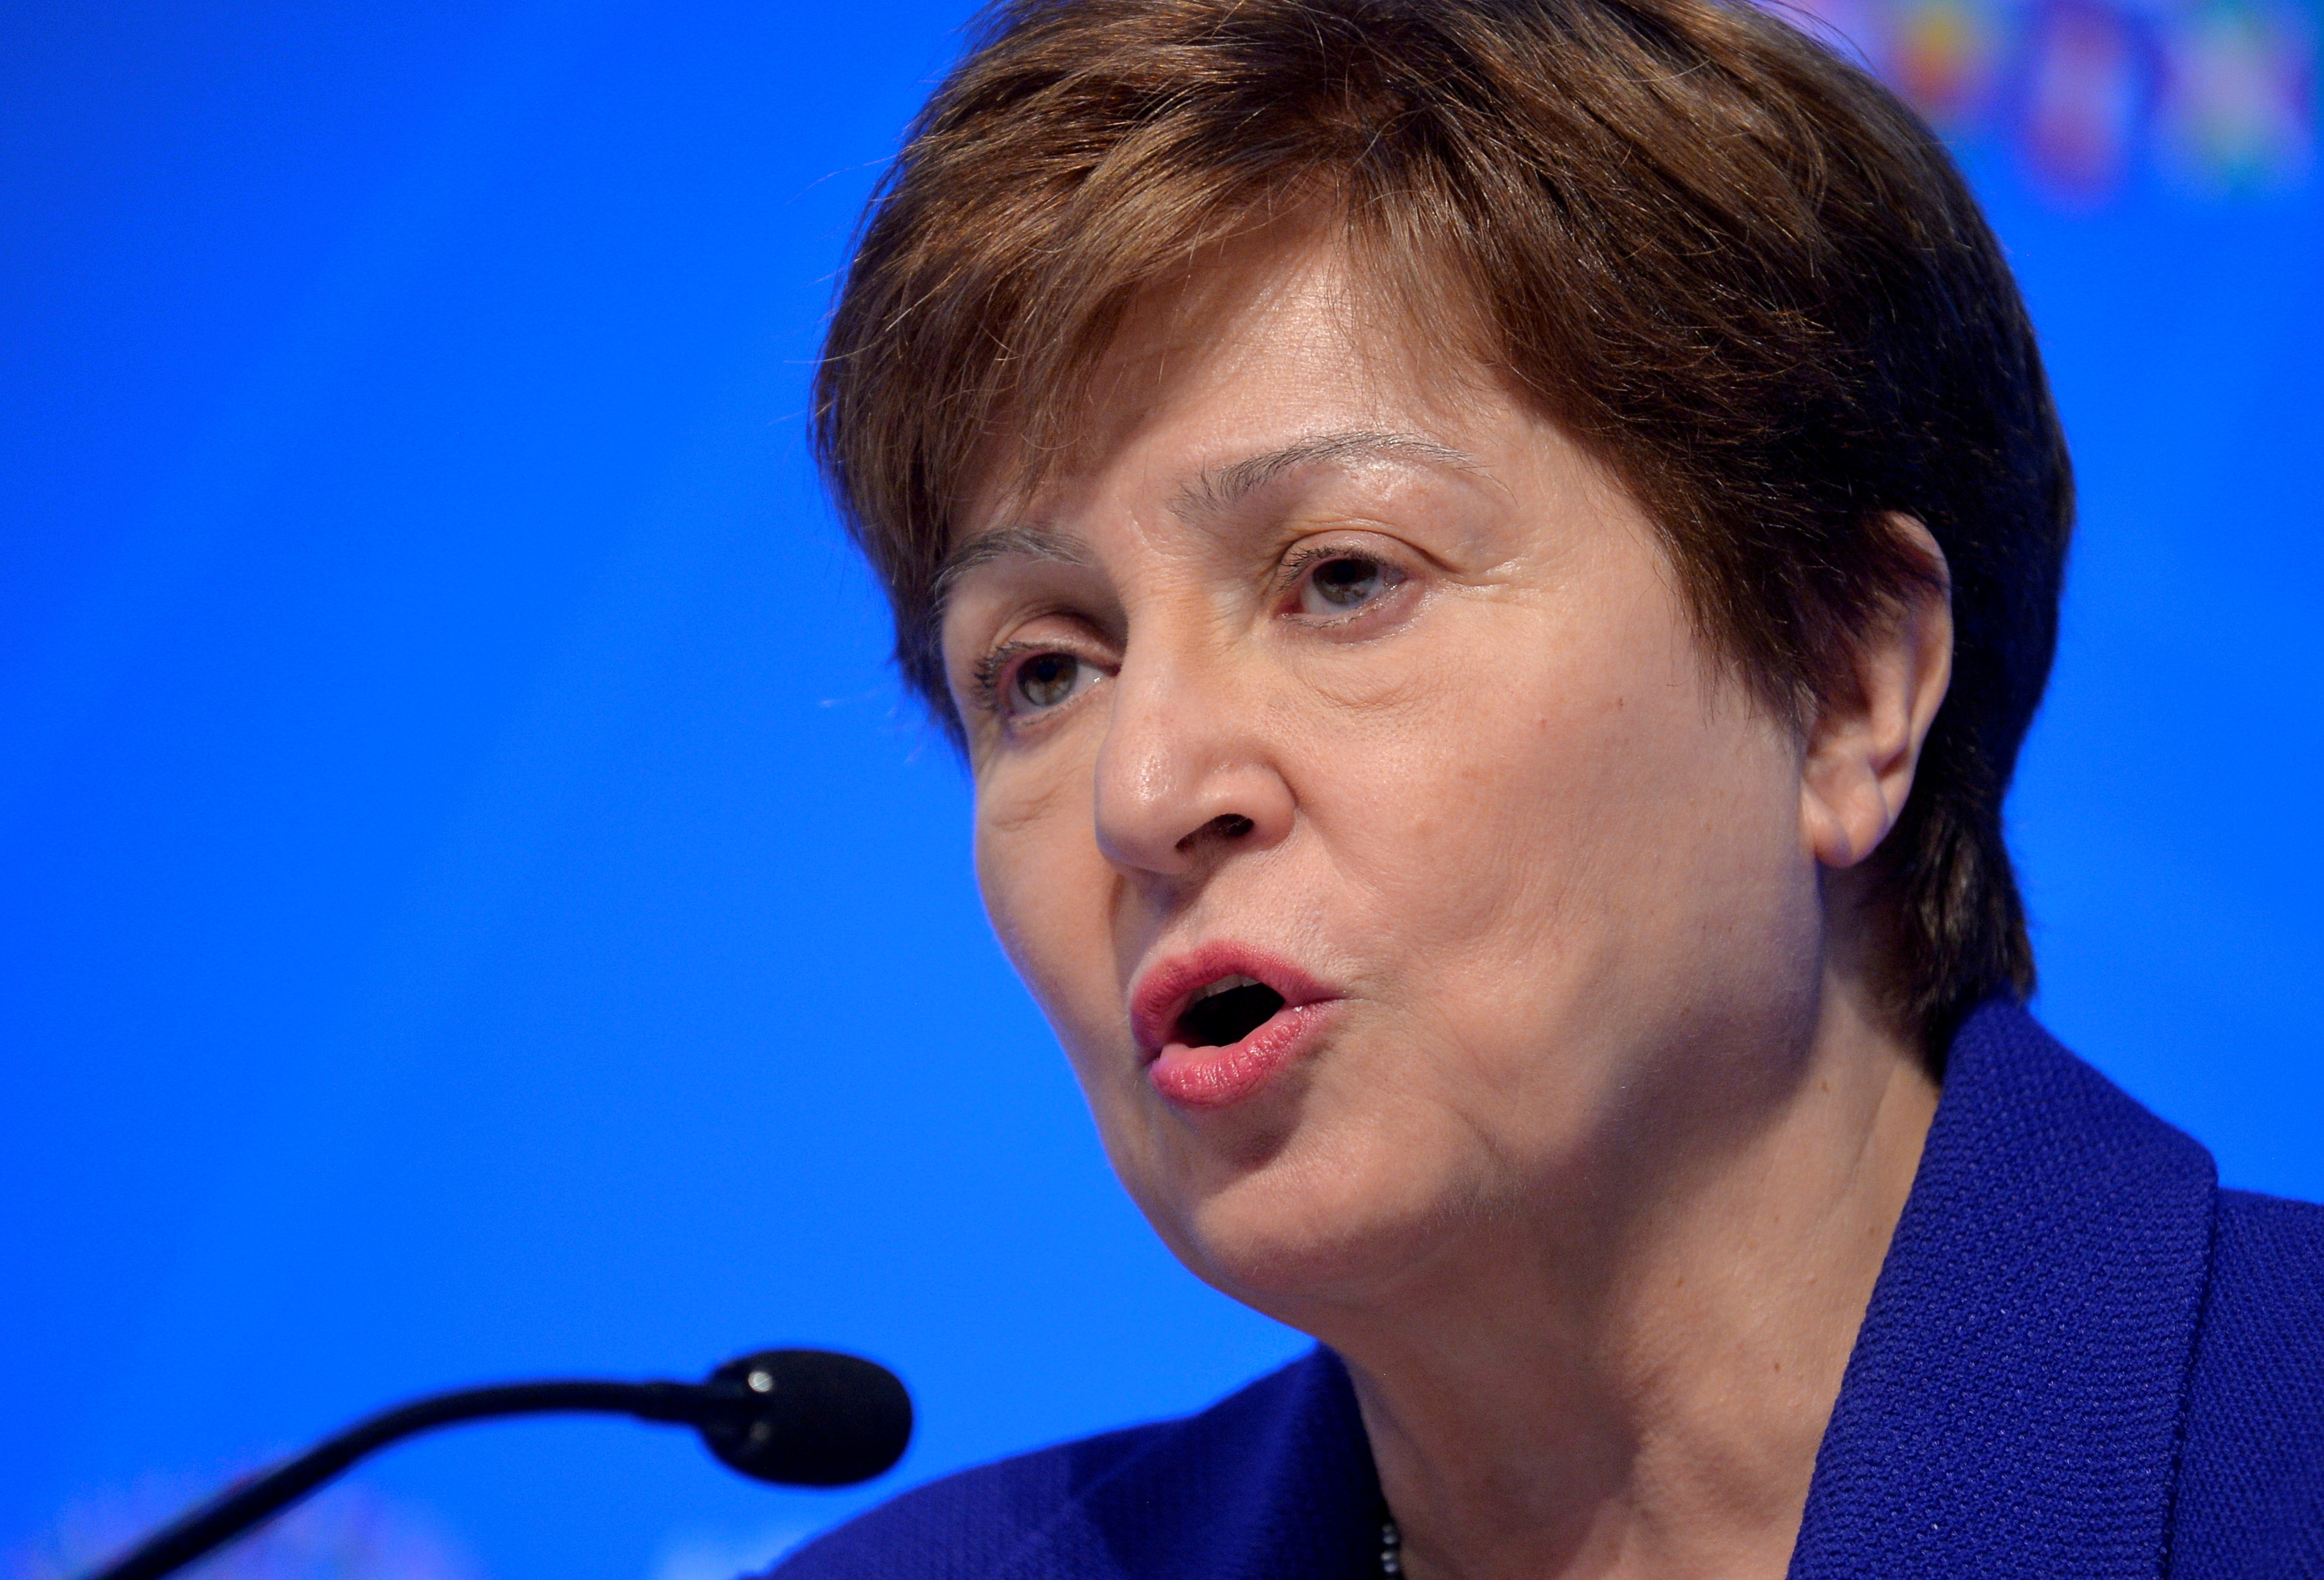 International Monetary Fund (IMF) Managing Director Kristalina Georgieva makes remarks during a closing news conference for the International Monetary Finance Committee, during the IMF and World Bank's 2019 Annual Meetings of finance ministers and bank governors, in Washington, U.S., October 19, 2019.   REUTERS/Mike Theiler/File Photo